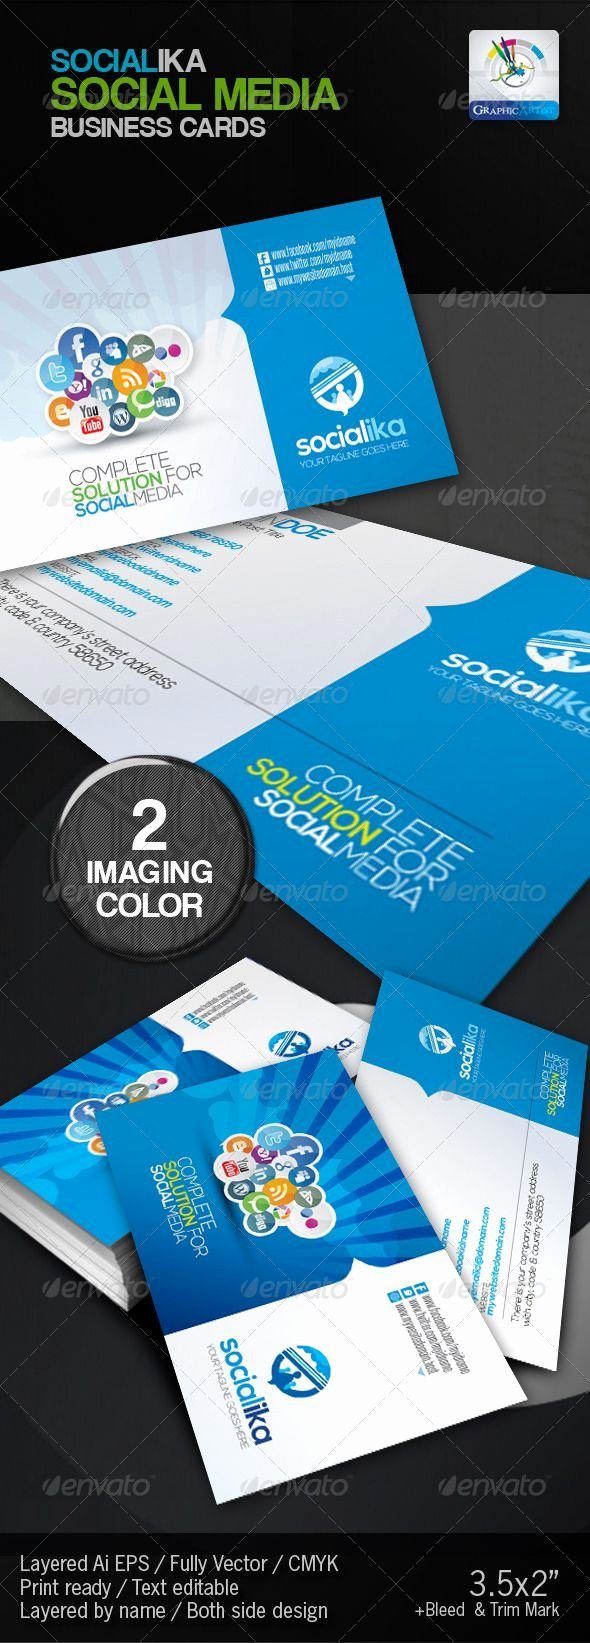 Social Media Business Cards Template Elegant 36 Best Images About Corporate Newsletters Email Blasts and Flyers On Pinterest